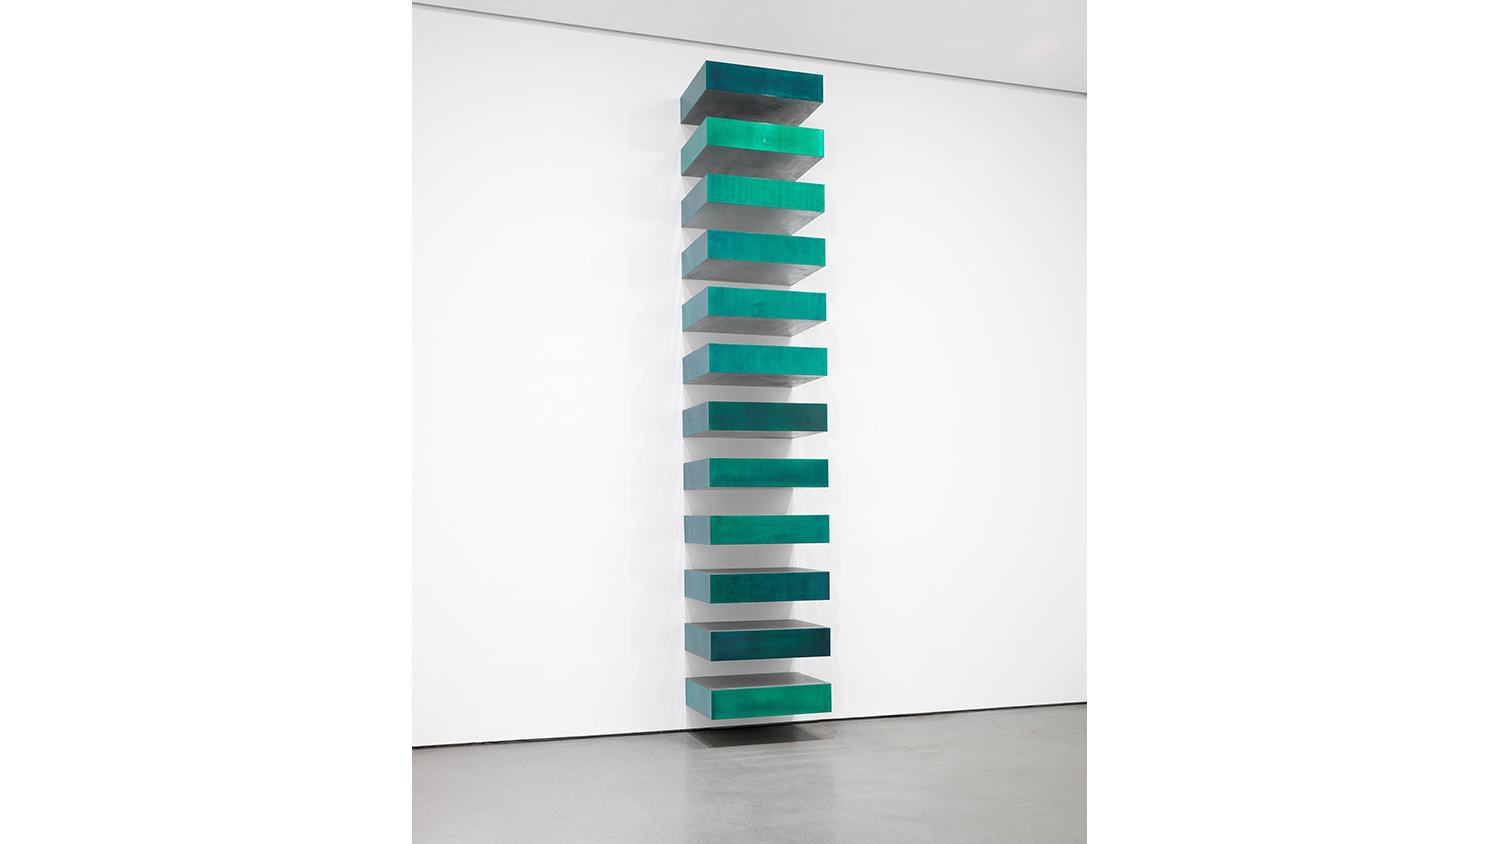 Donald judd untitled stack 1967 for Donald judd stack 1972